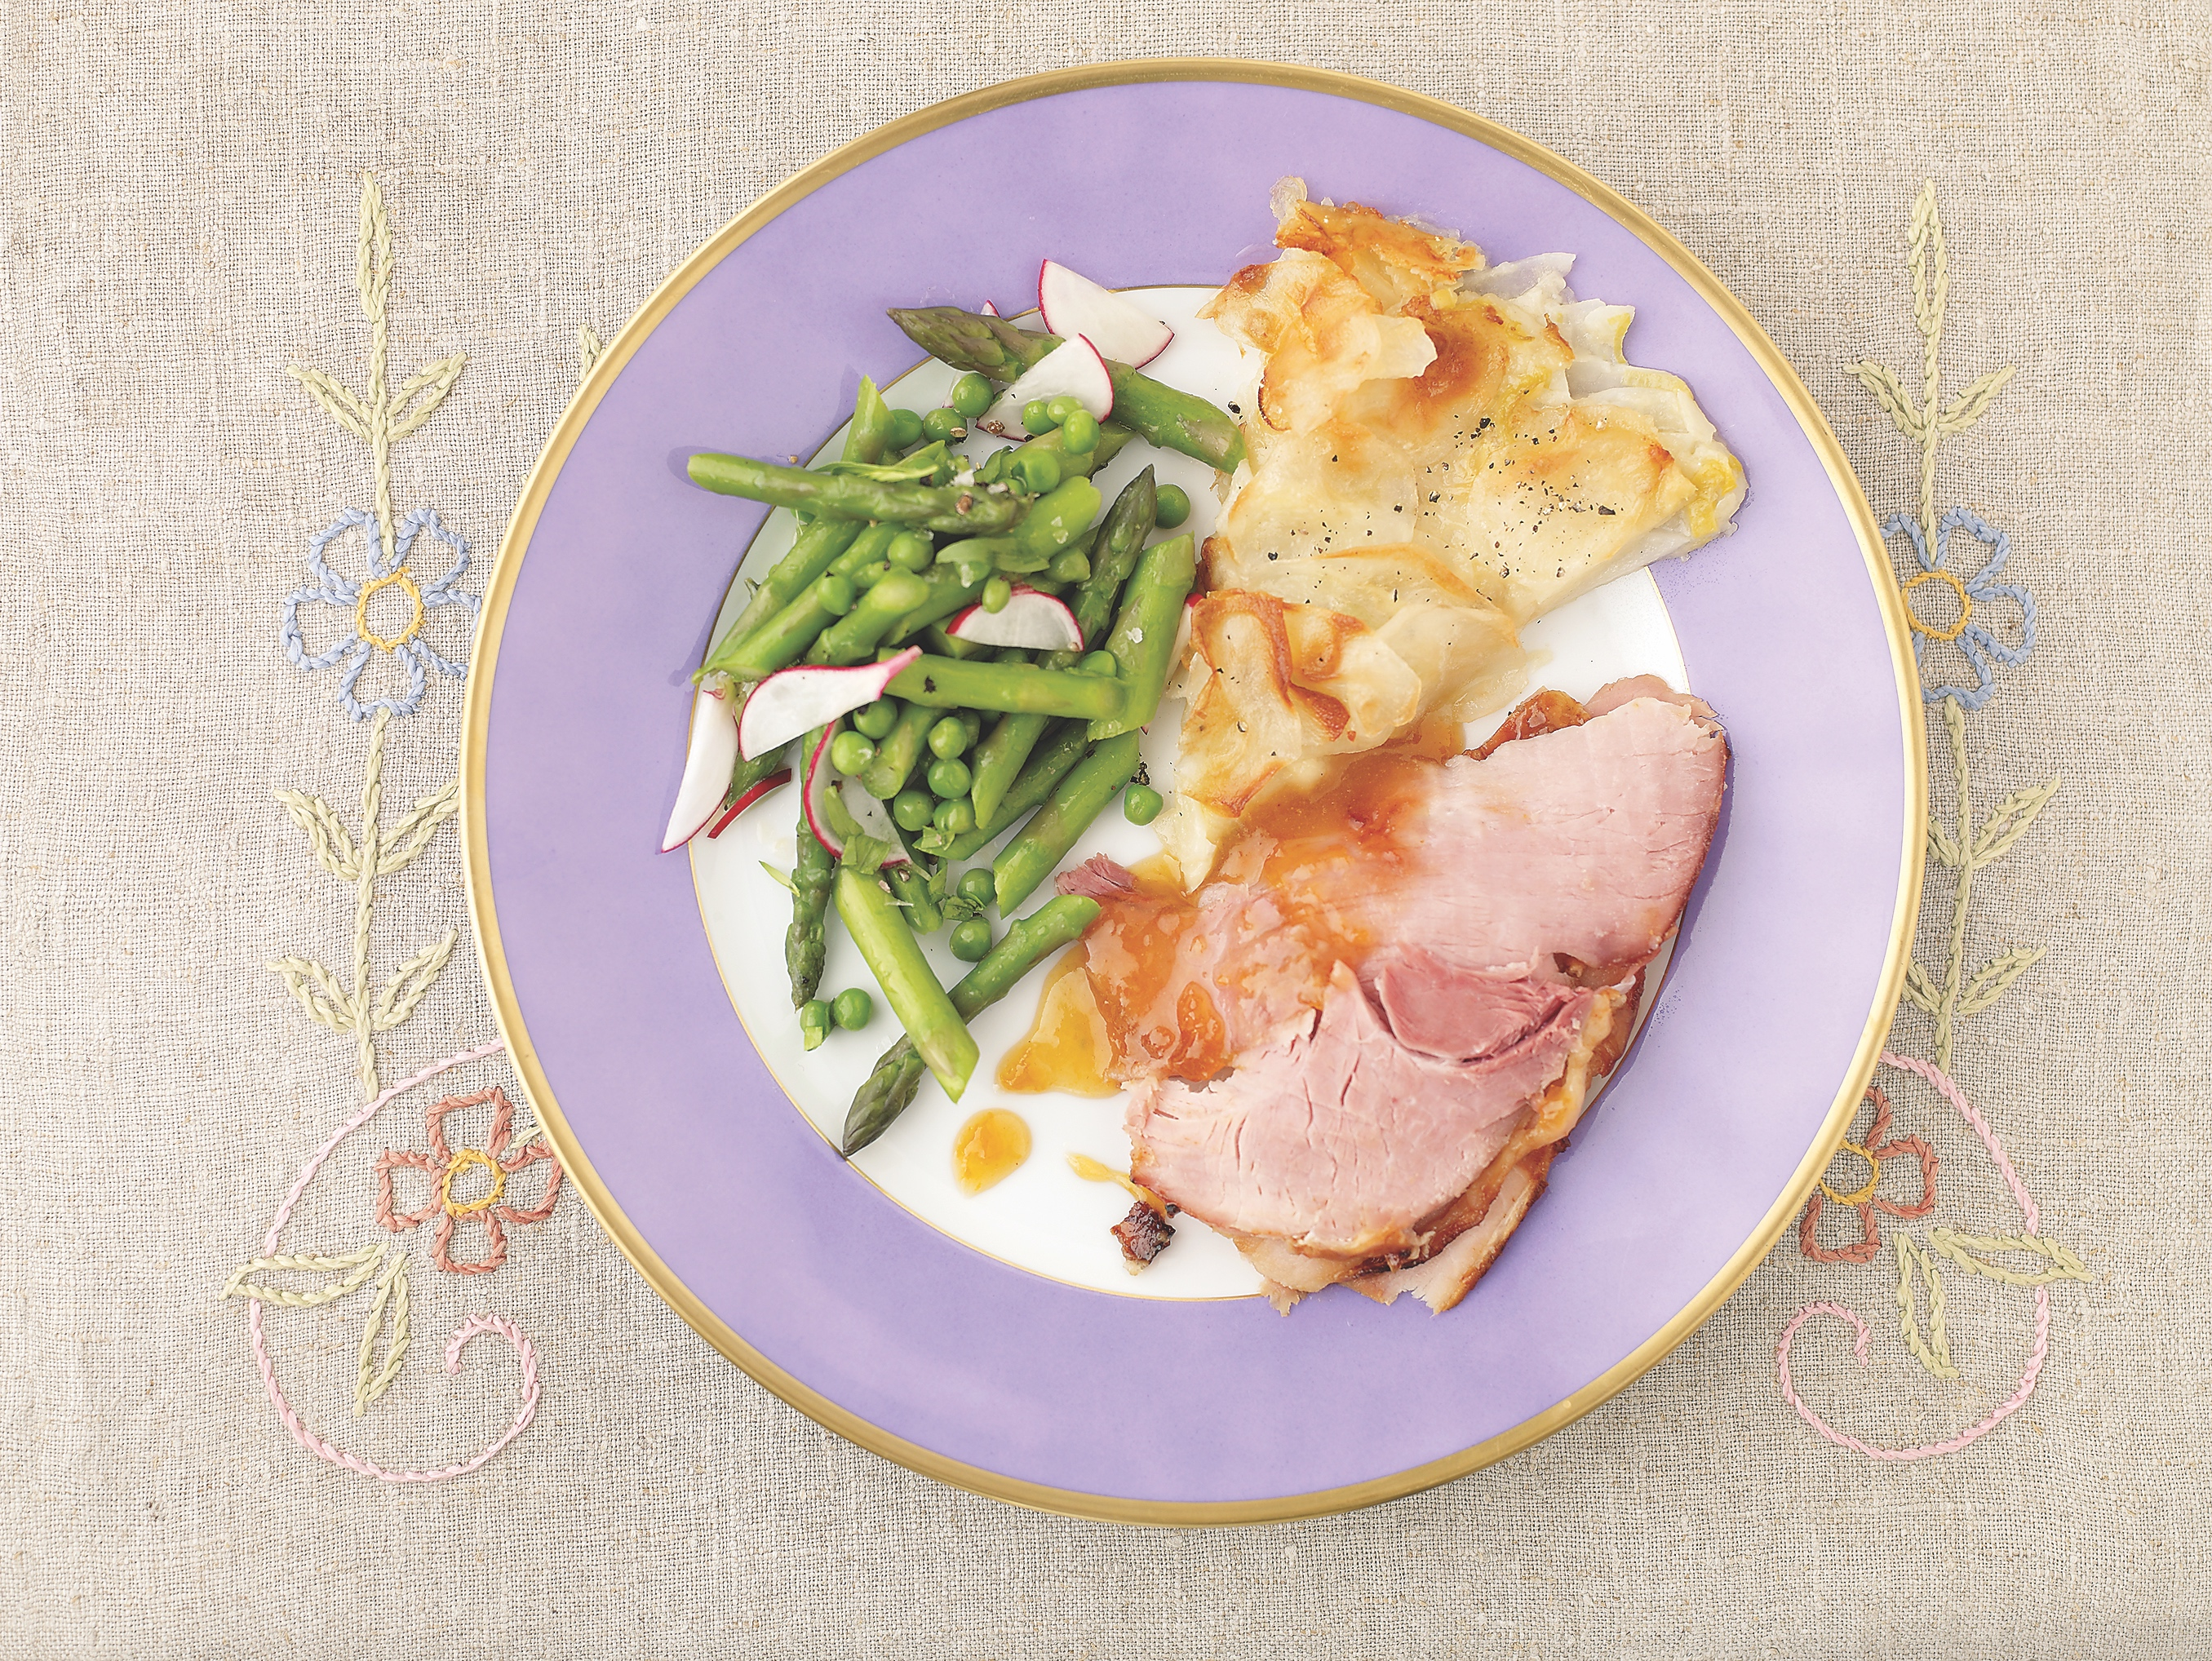 Feast on Baked Ham (and a Billowy Meringue Cake) for Easter Dinner